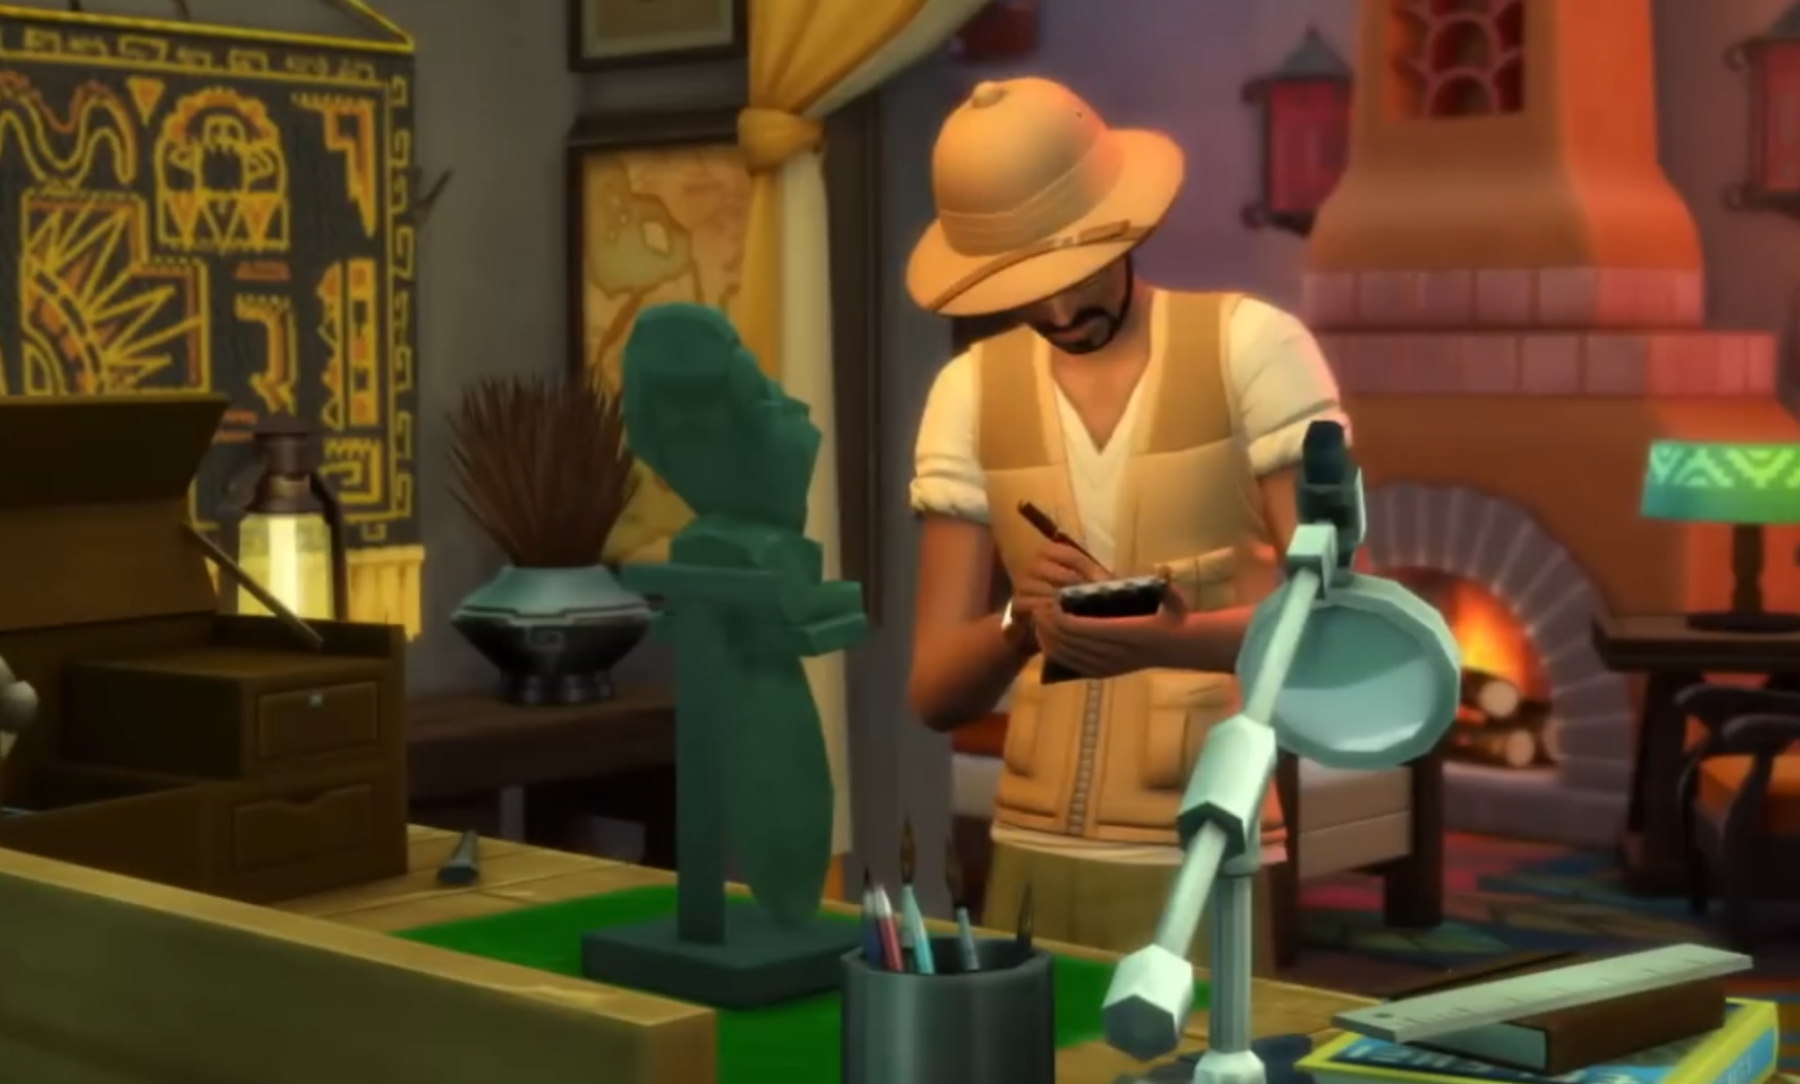 The Sims 4 Jungle Adventure Game Pack: Guides, Features